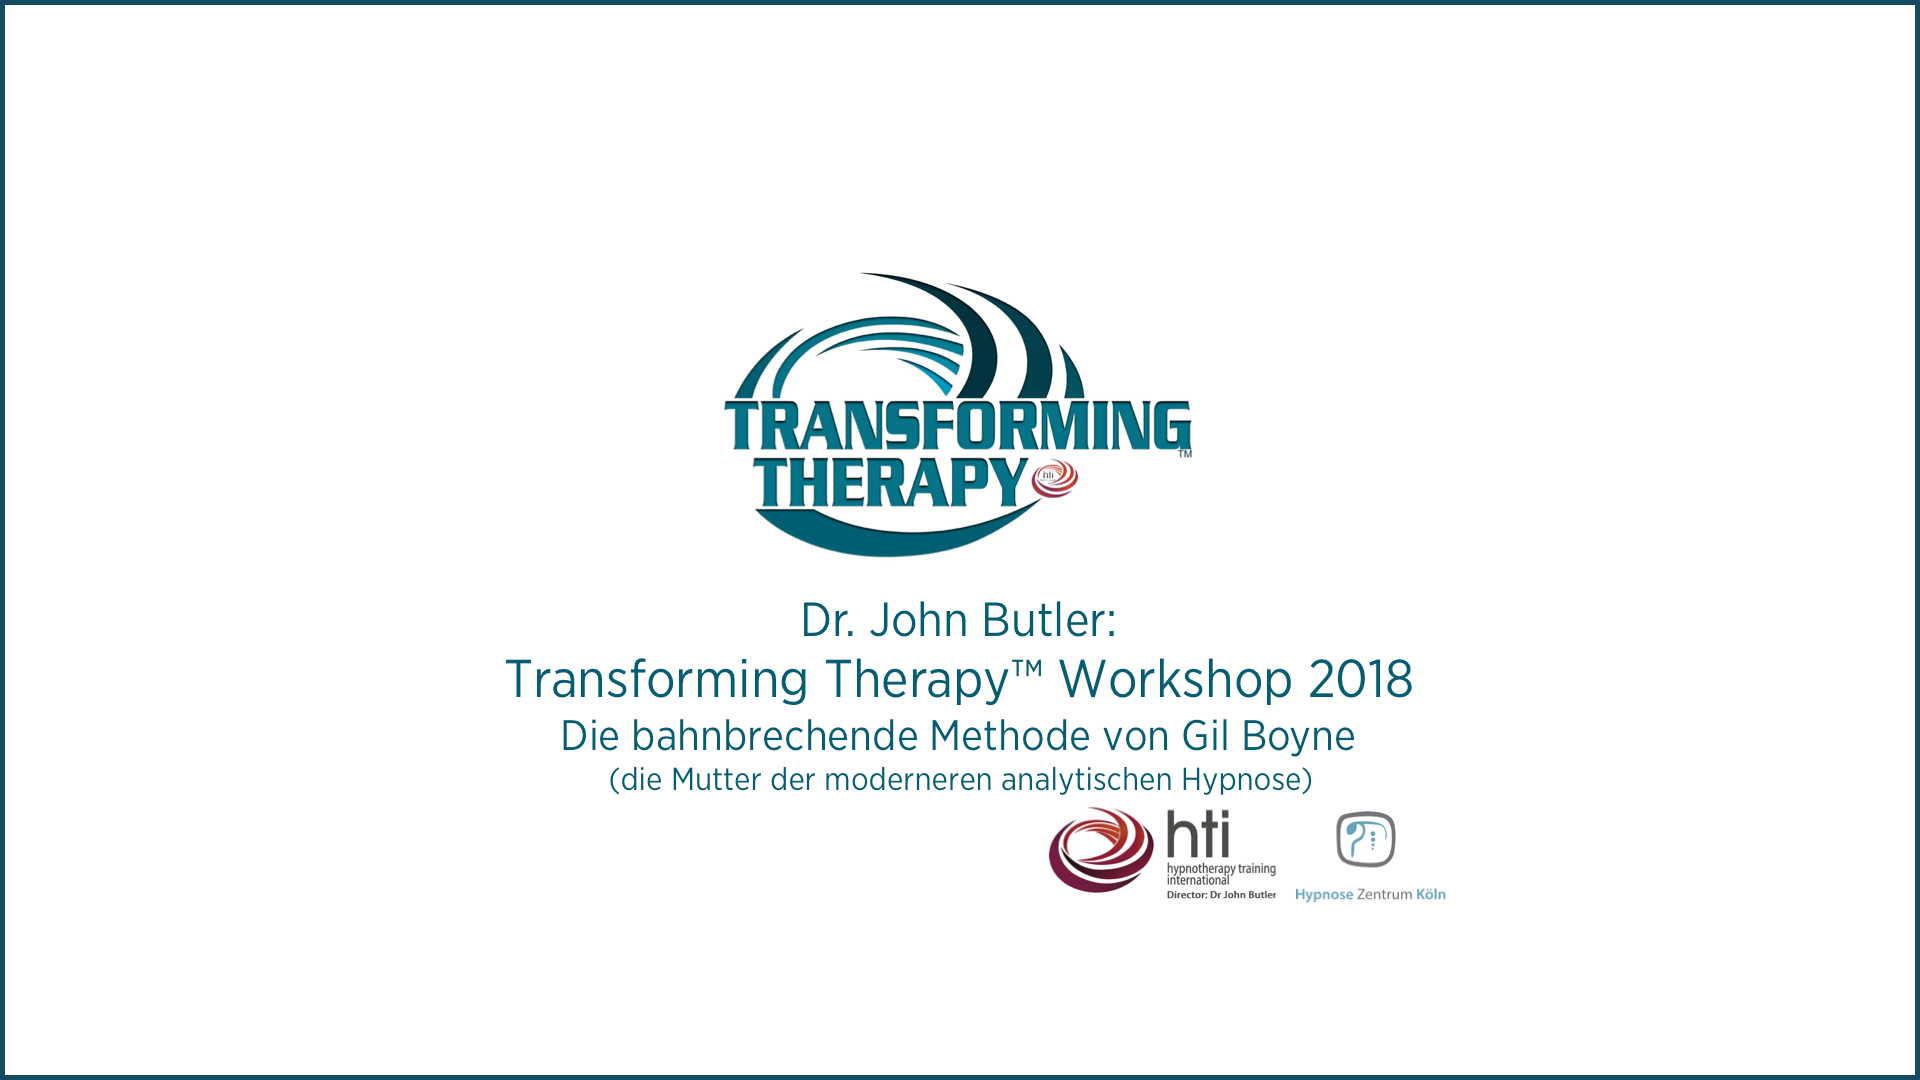 Transforming Therapy™ Hypnose Workshop 2018 Koeln_2